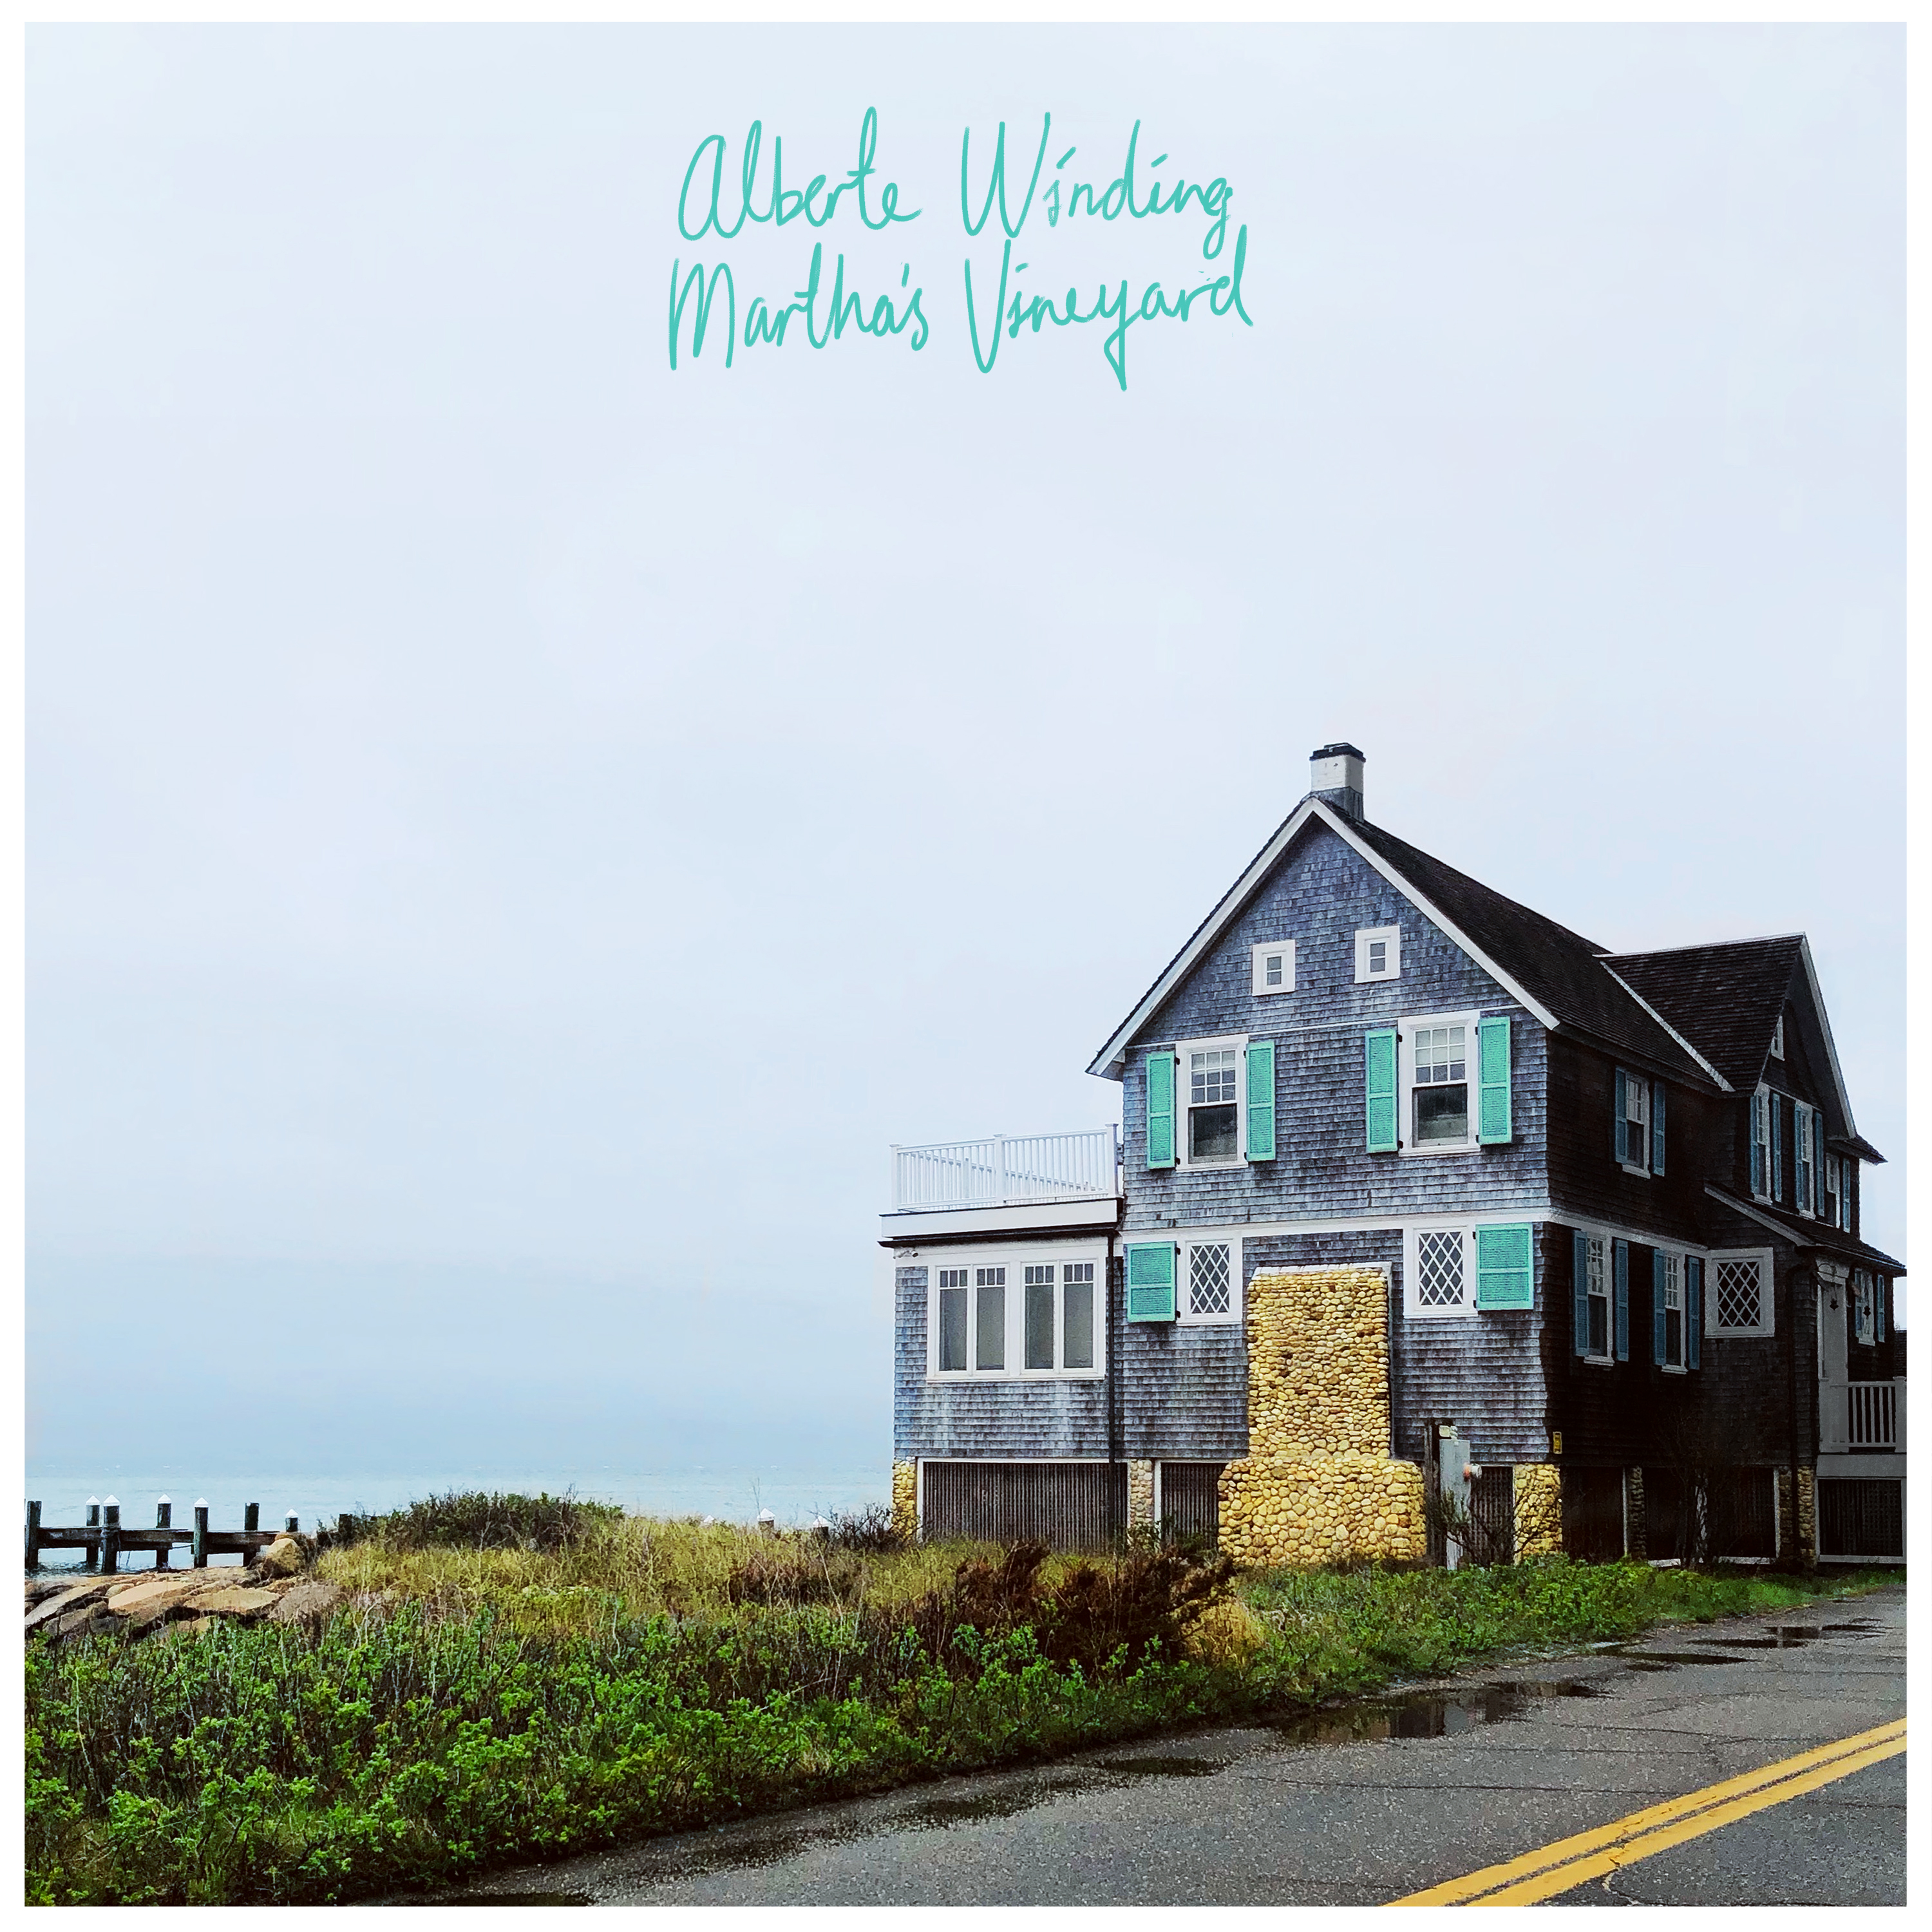 Alberte Winding – Martha's Vineyard (album)